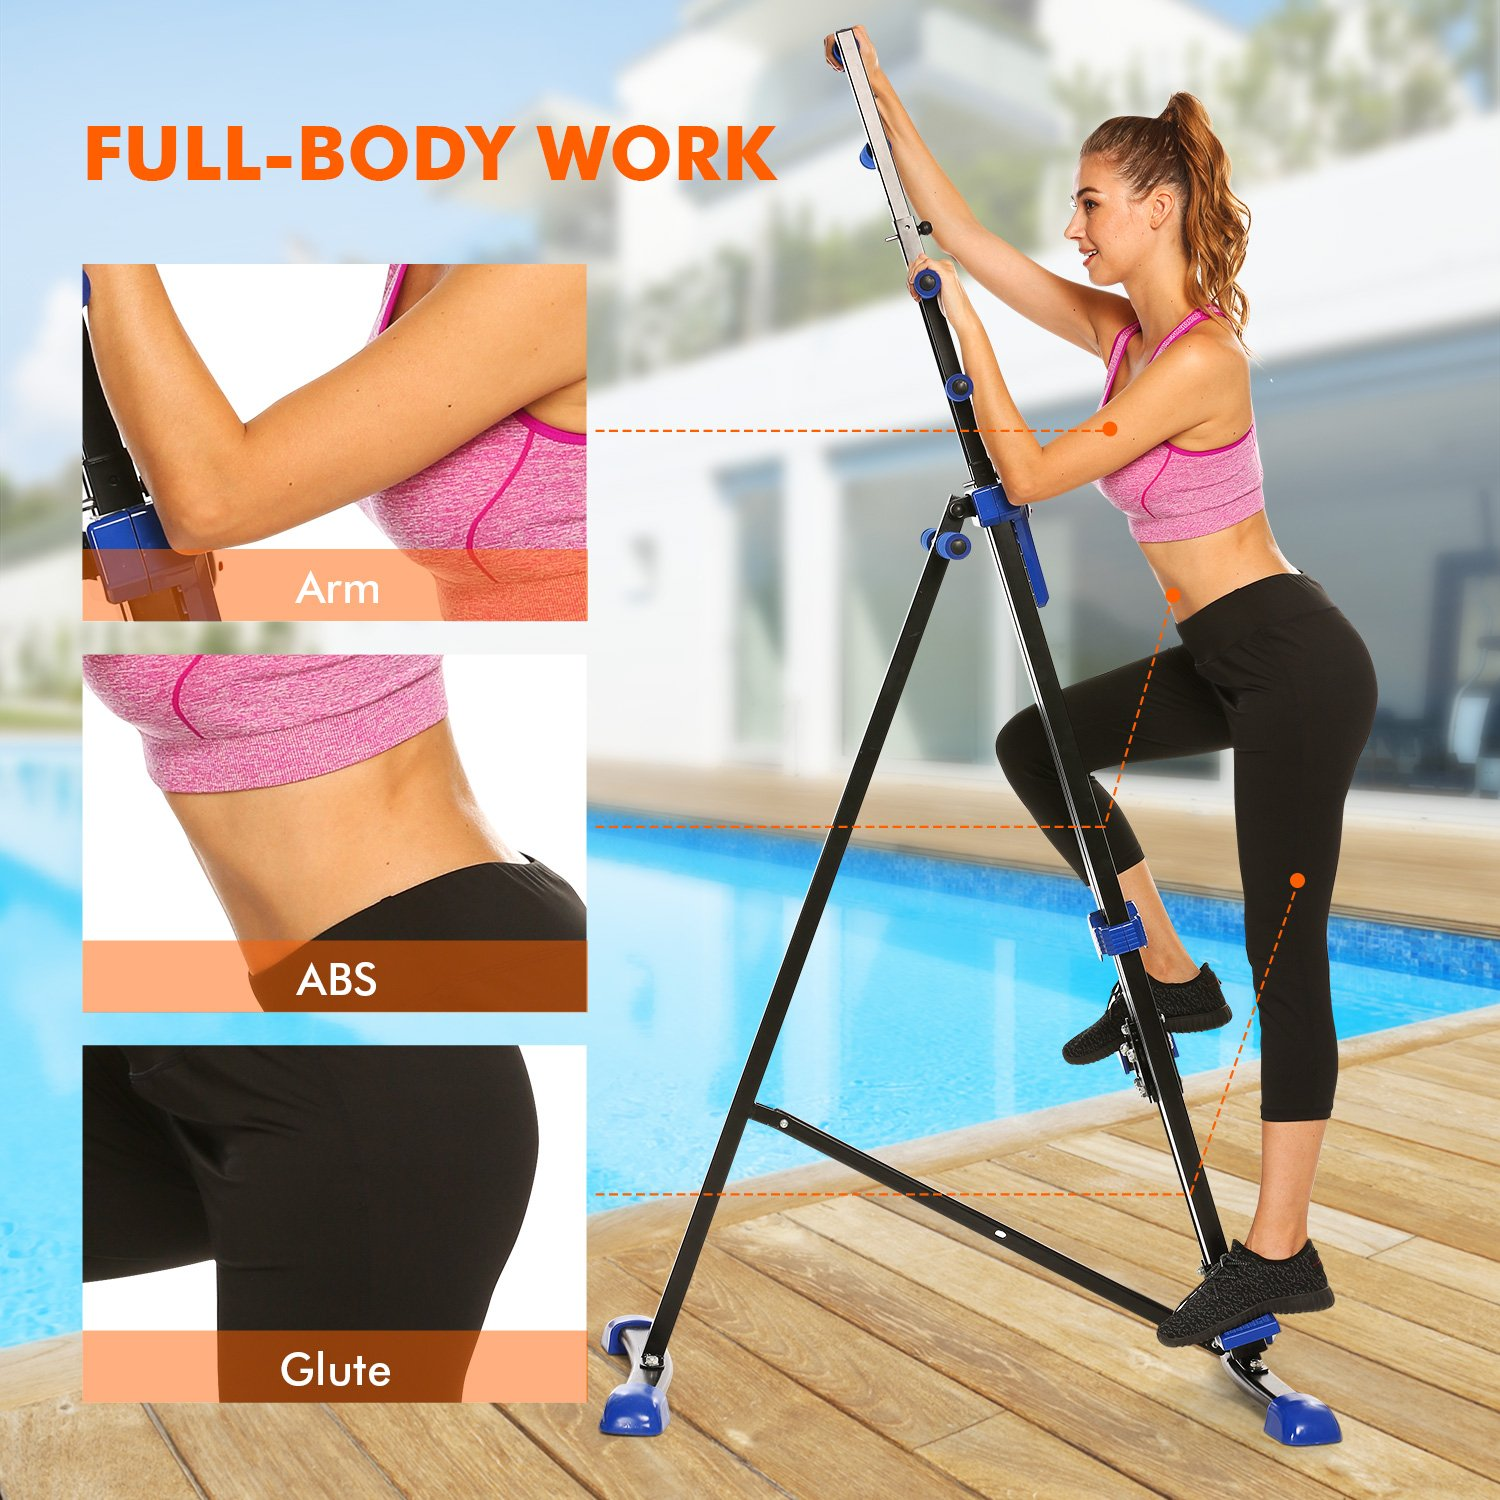 Moroly Vertical Climber 2 in 1 Climbing Stepper Folding Exercise Machine,Fitness Equipment Climber Home Gym Cardio Workout Body Trainer US Stock